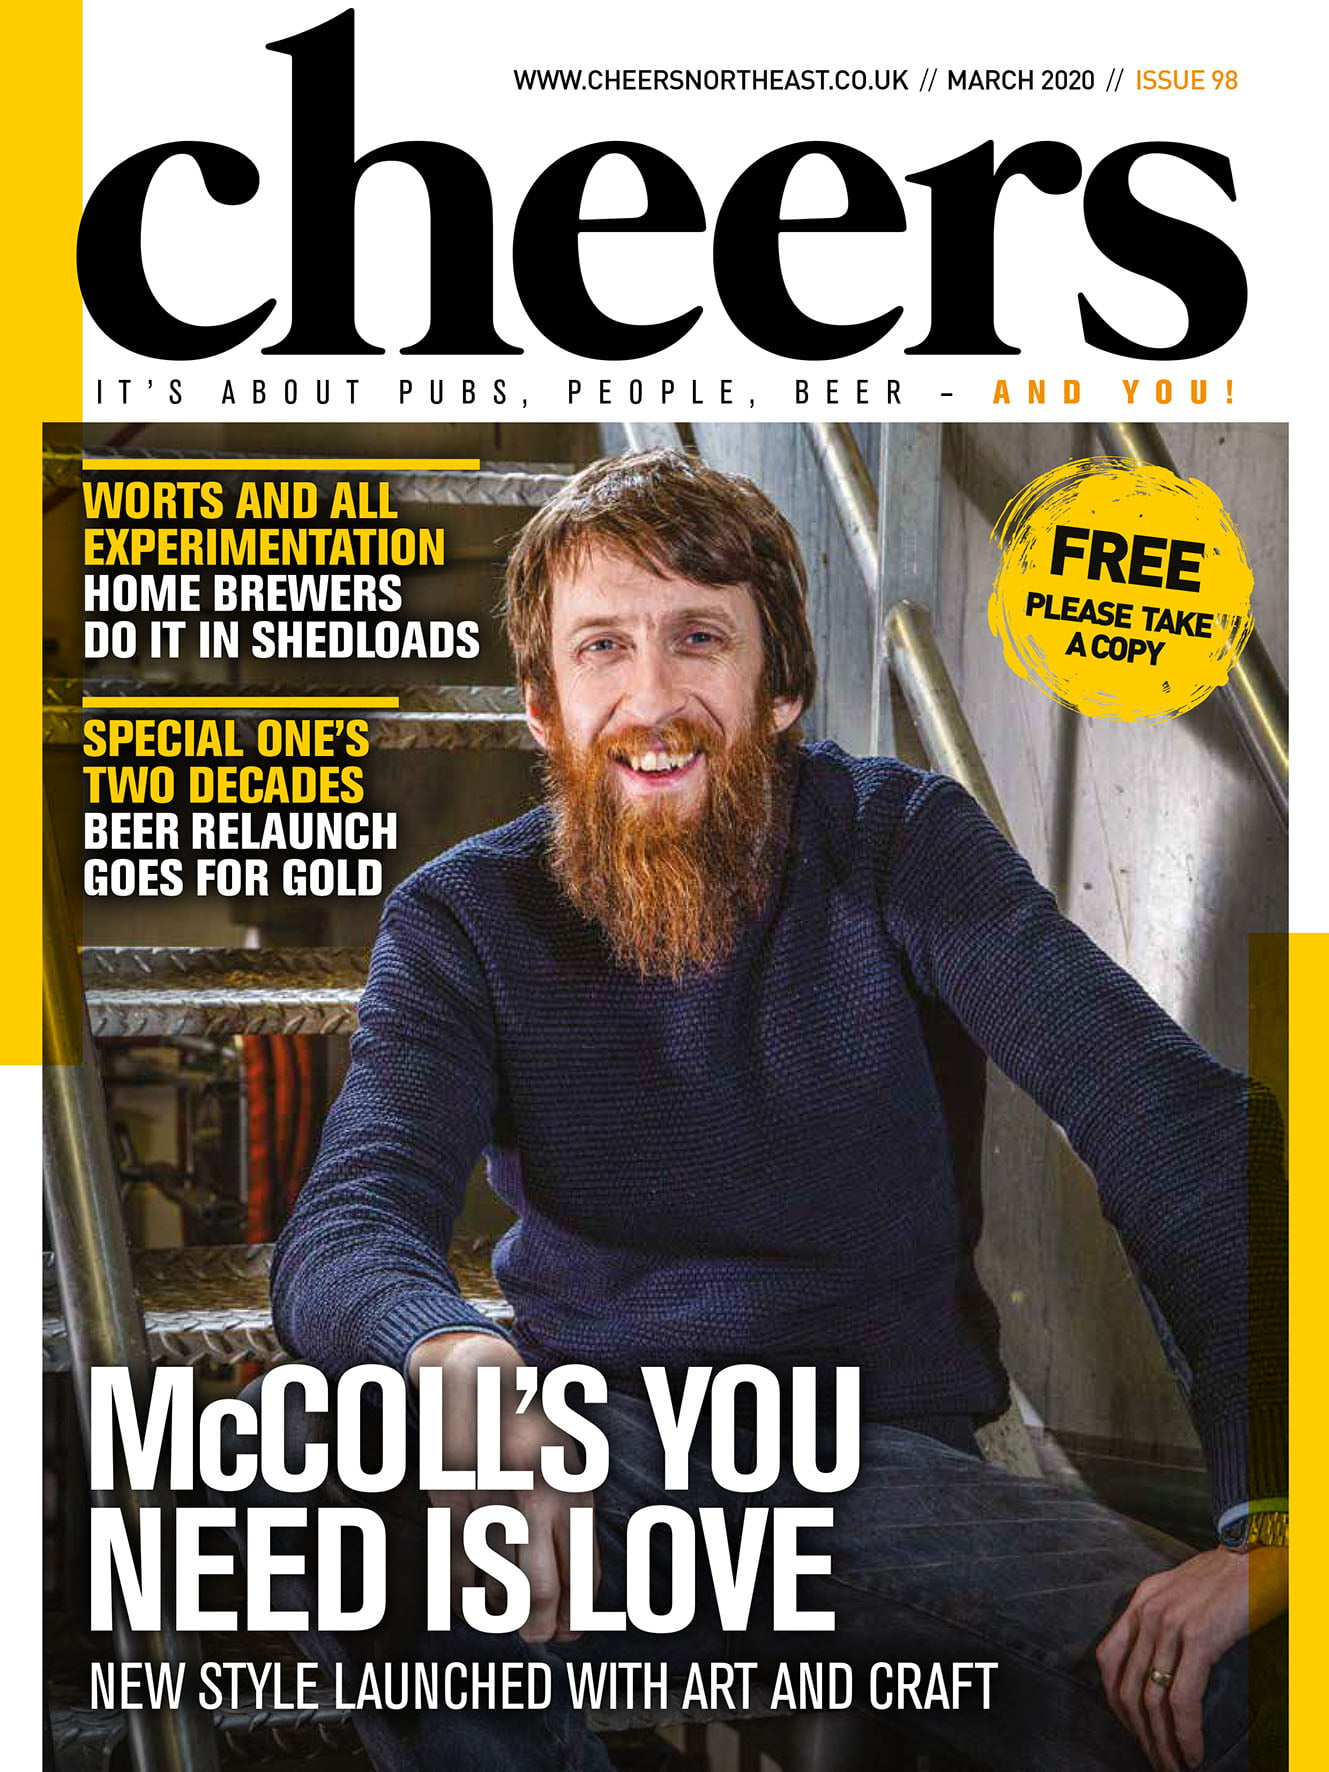 Cheers issue 98